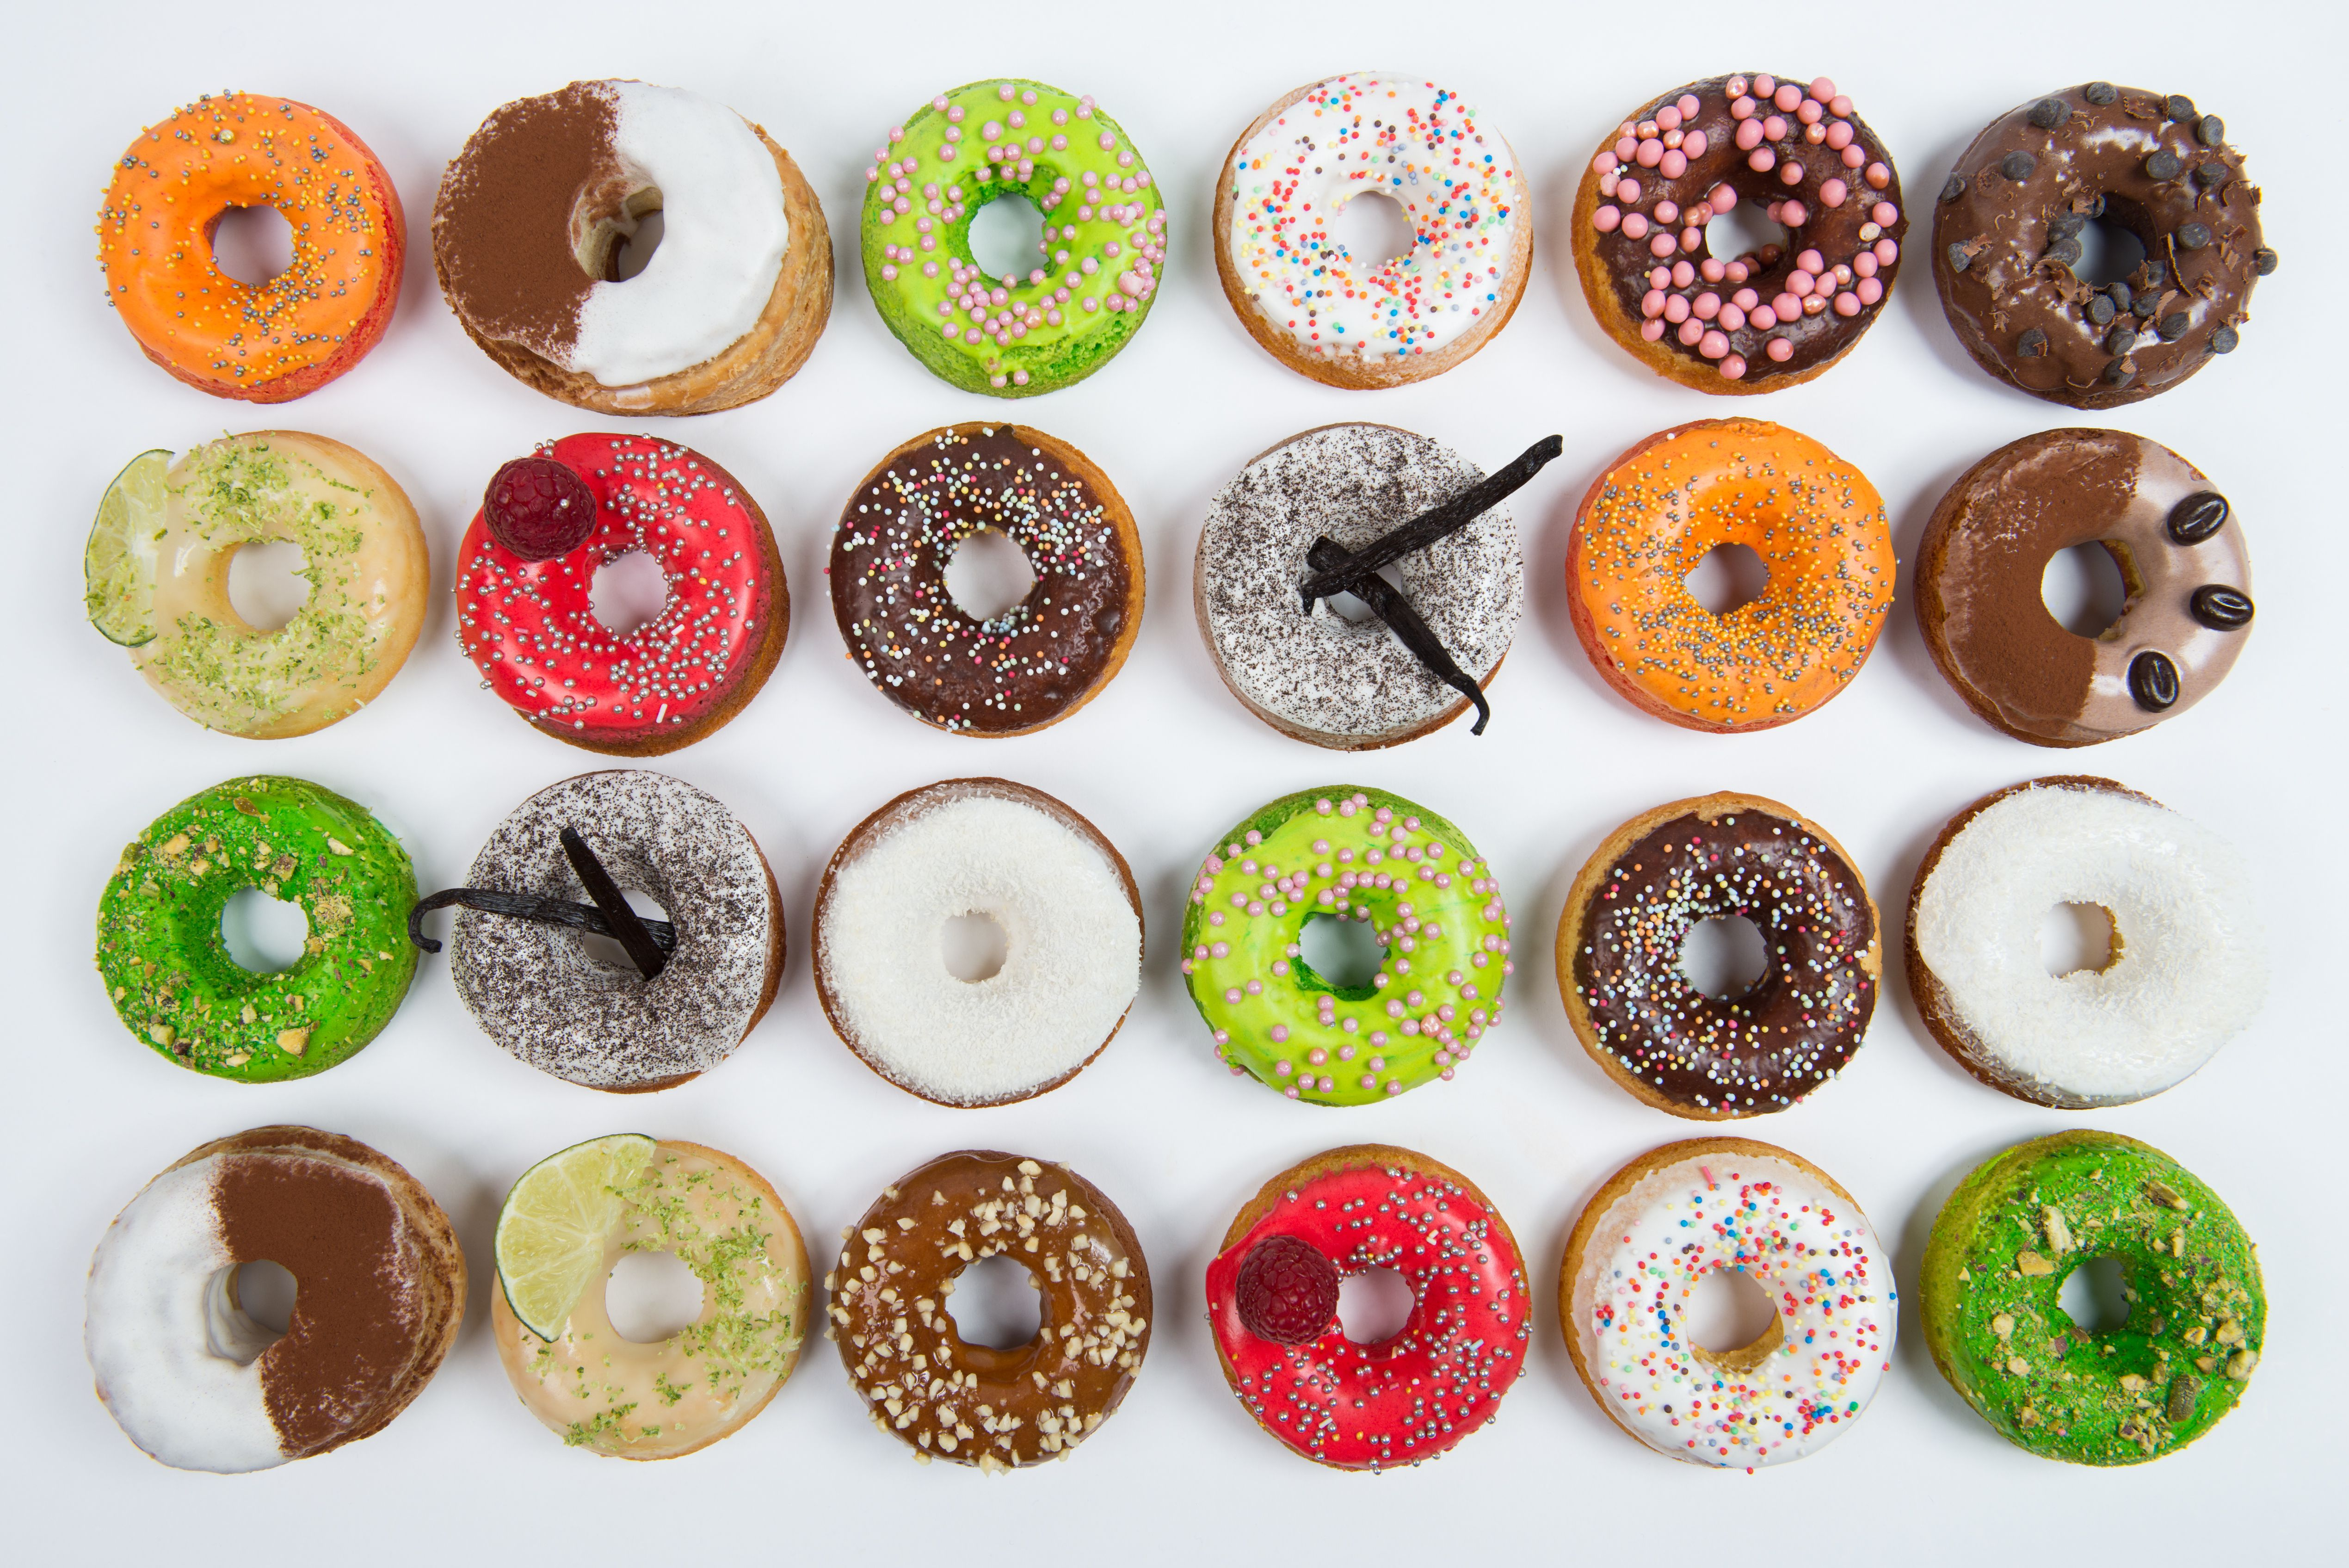 Dunkin Donuts Nutrition Facts And Calorie Counts